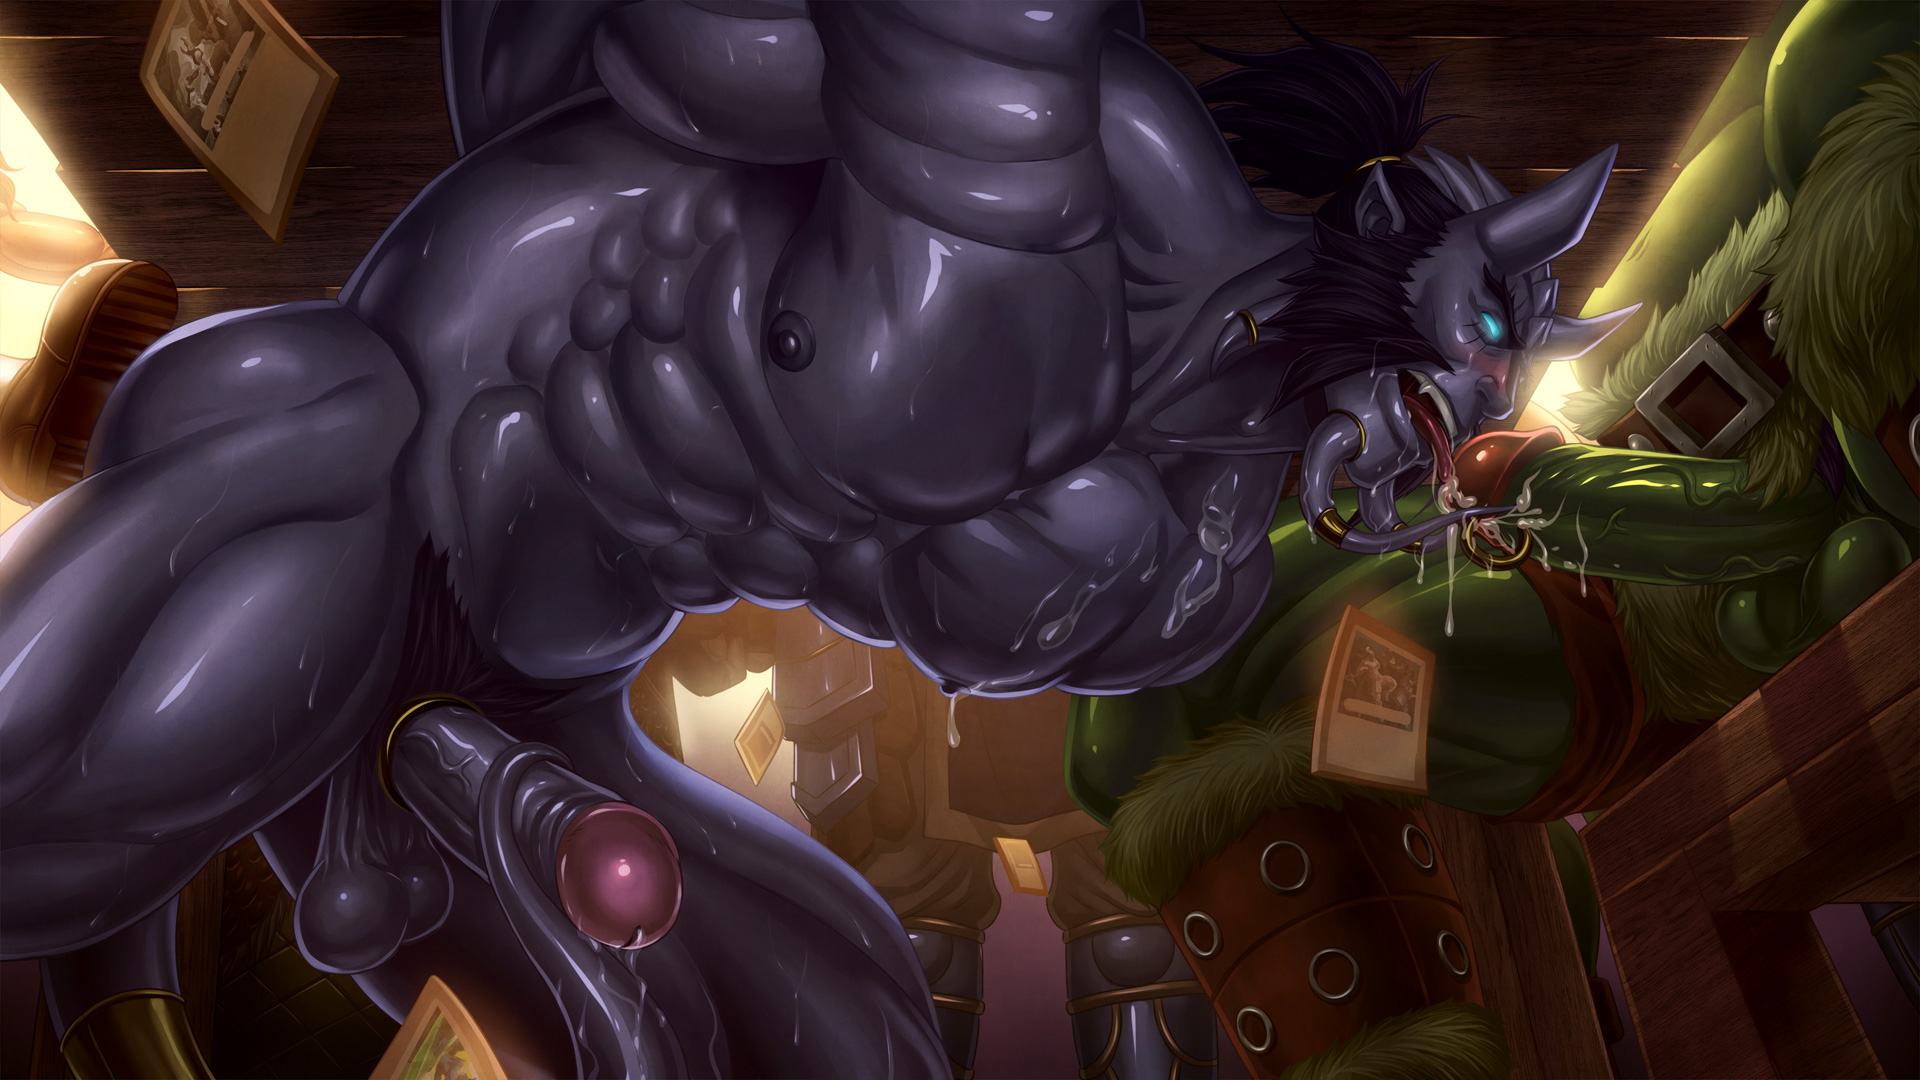 World of warcraft gay sucking worgen dick sexy galleries